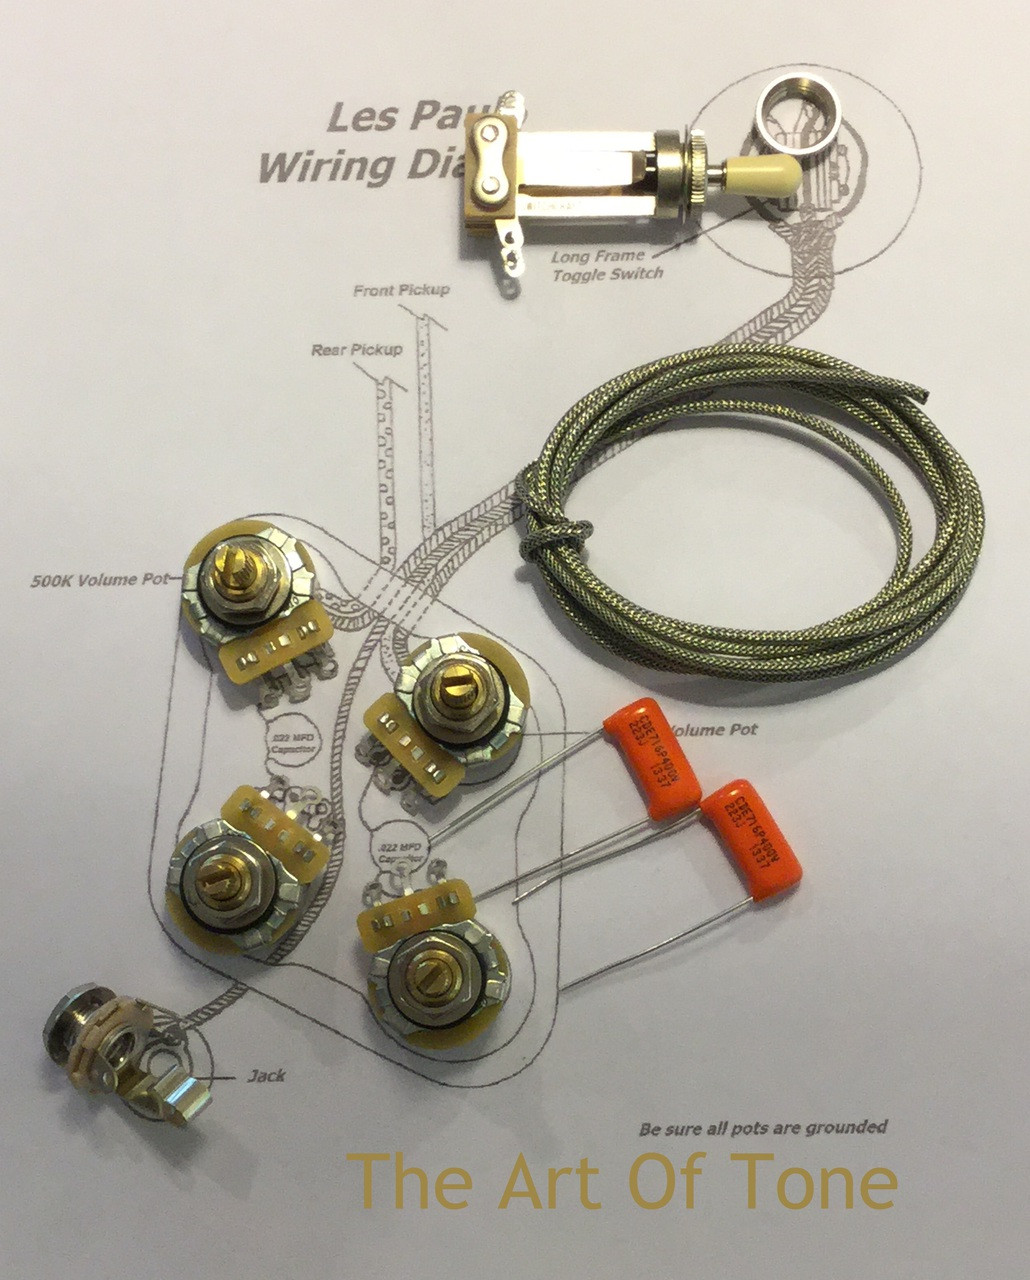 Charming Lifan 125 Wiring Harness Tiny Ibanez Pickup Wiring Shaped How To Rewire An Electric Guitar Dimarzio Push Pull Pot Young Ibanez Humbuckers FreshIbanez Gio Gax70 Electric Guitar TAOT Wiring Kit   Gibson Les Paul®   Short Shaft   CTS TAOT 450S ..